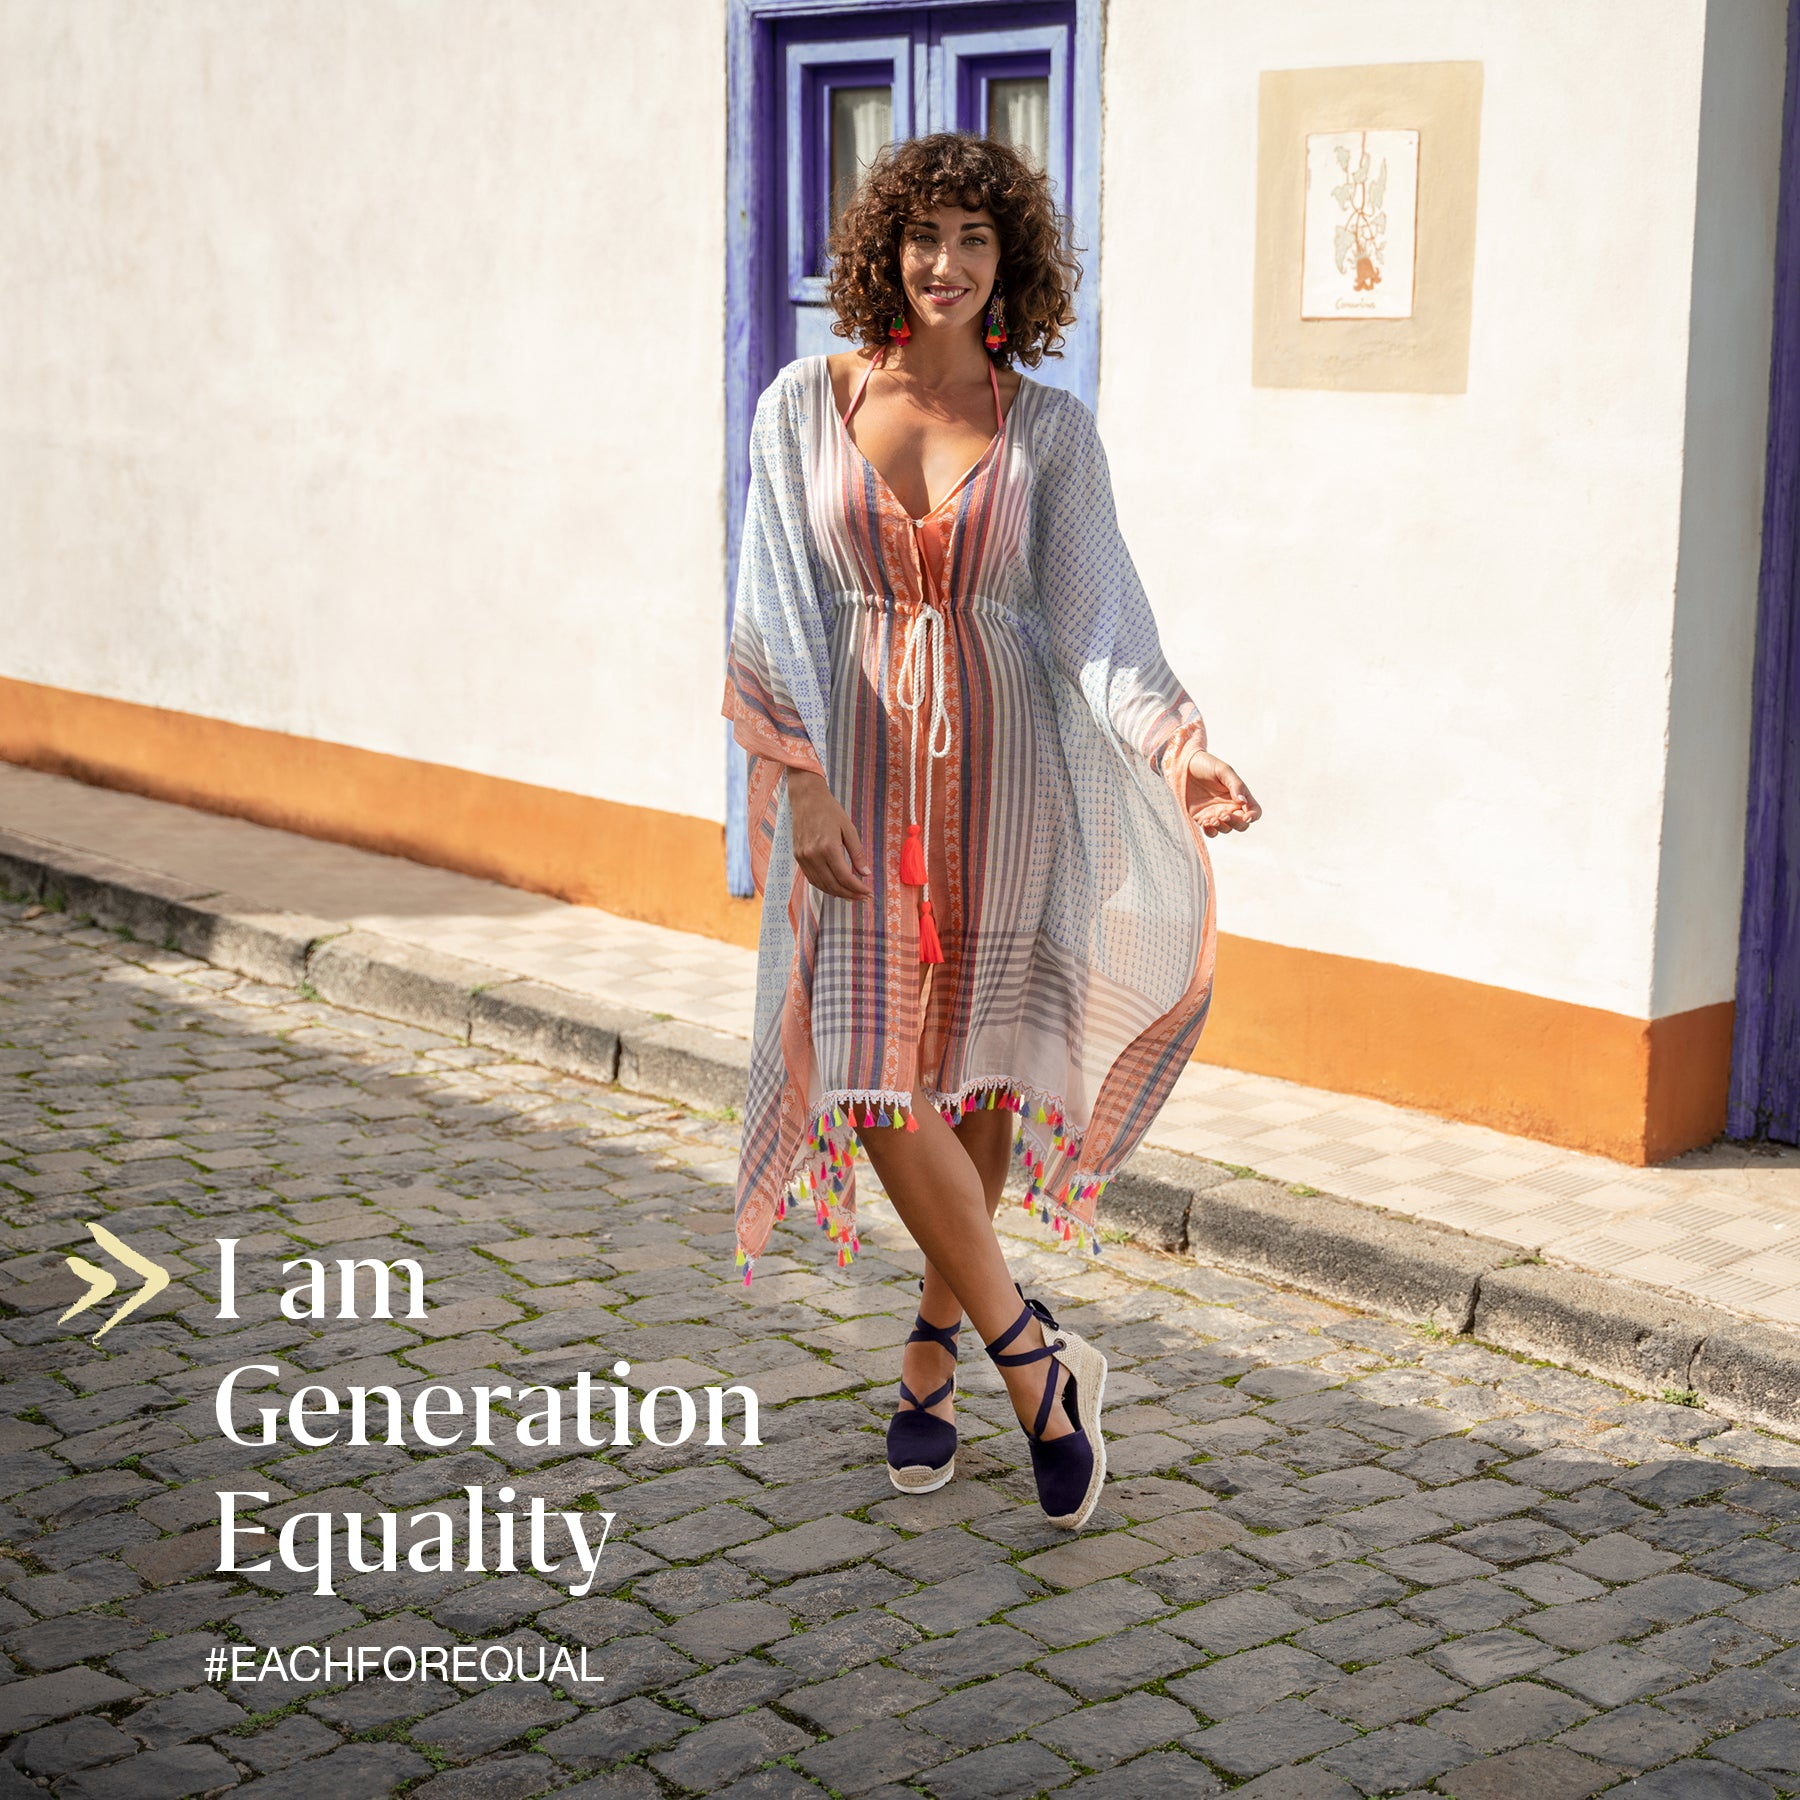 I am Generation Equality